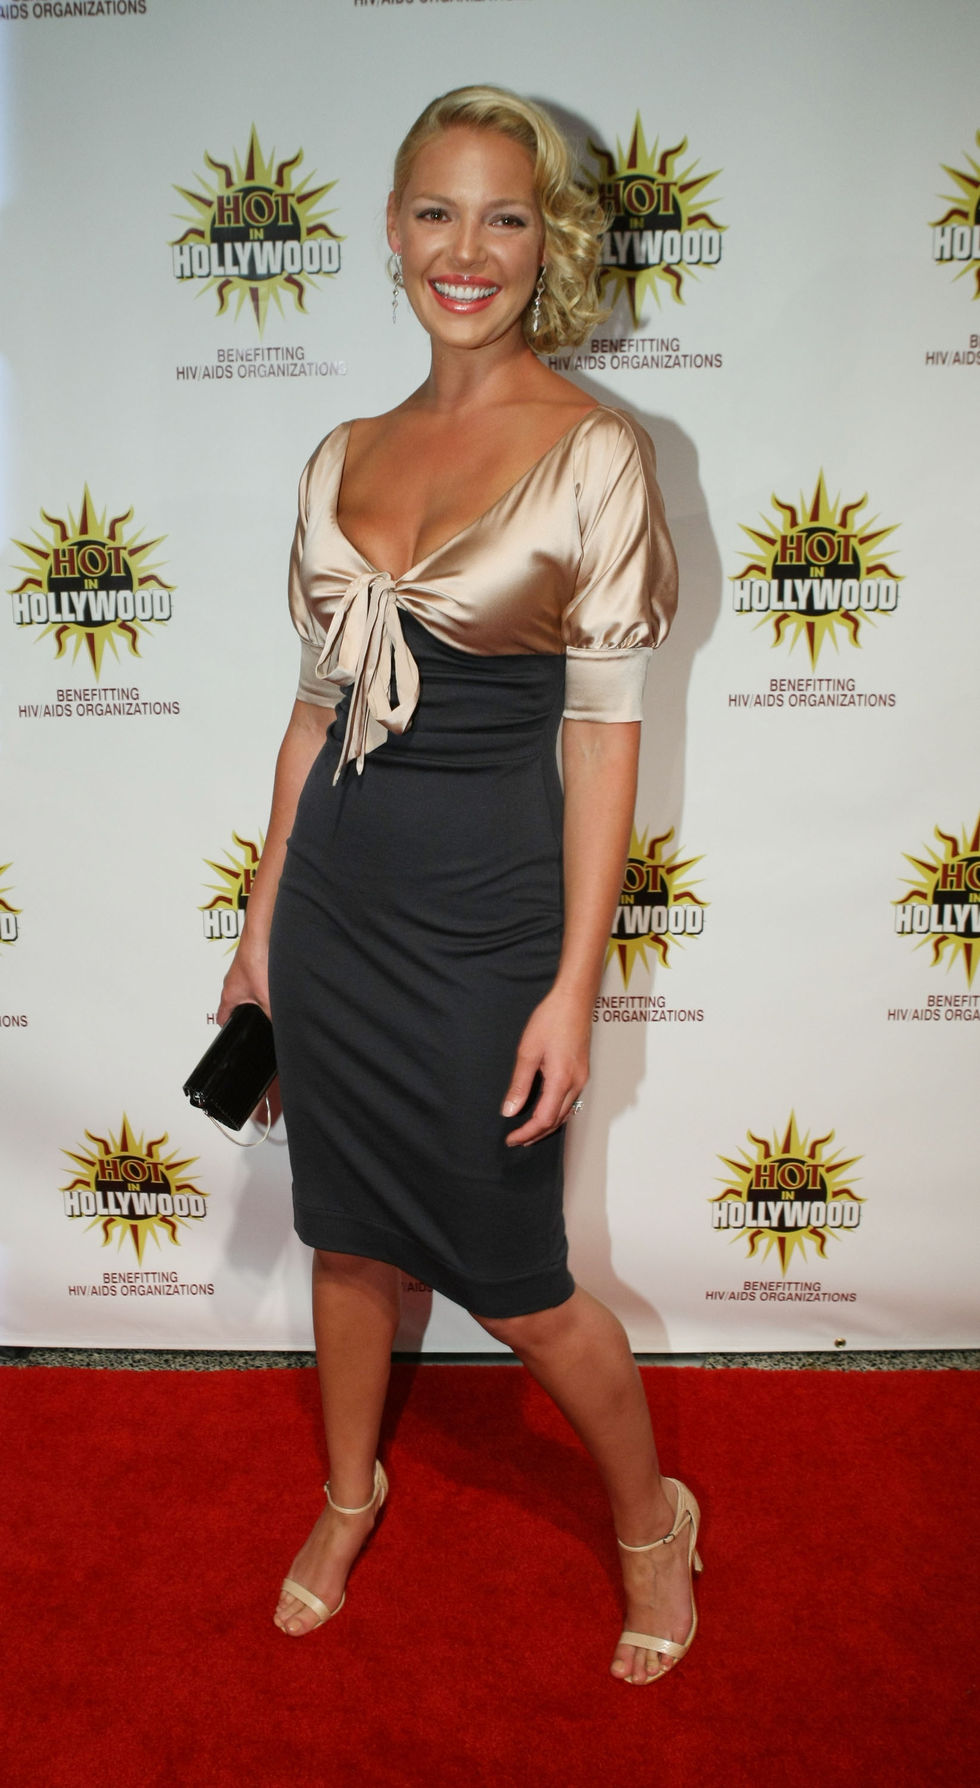 katherine-heigl-3rd-annual-hot-in-hollywood-event-in-hollywood-01